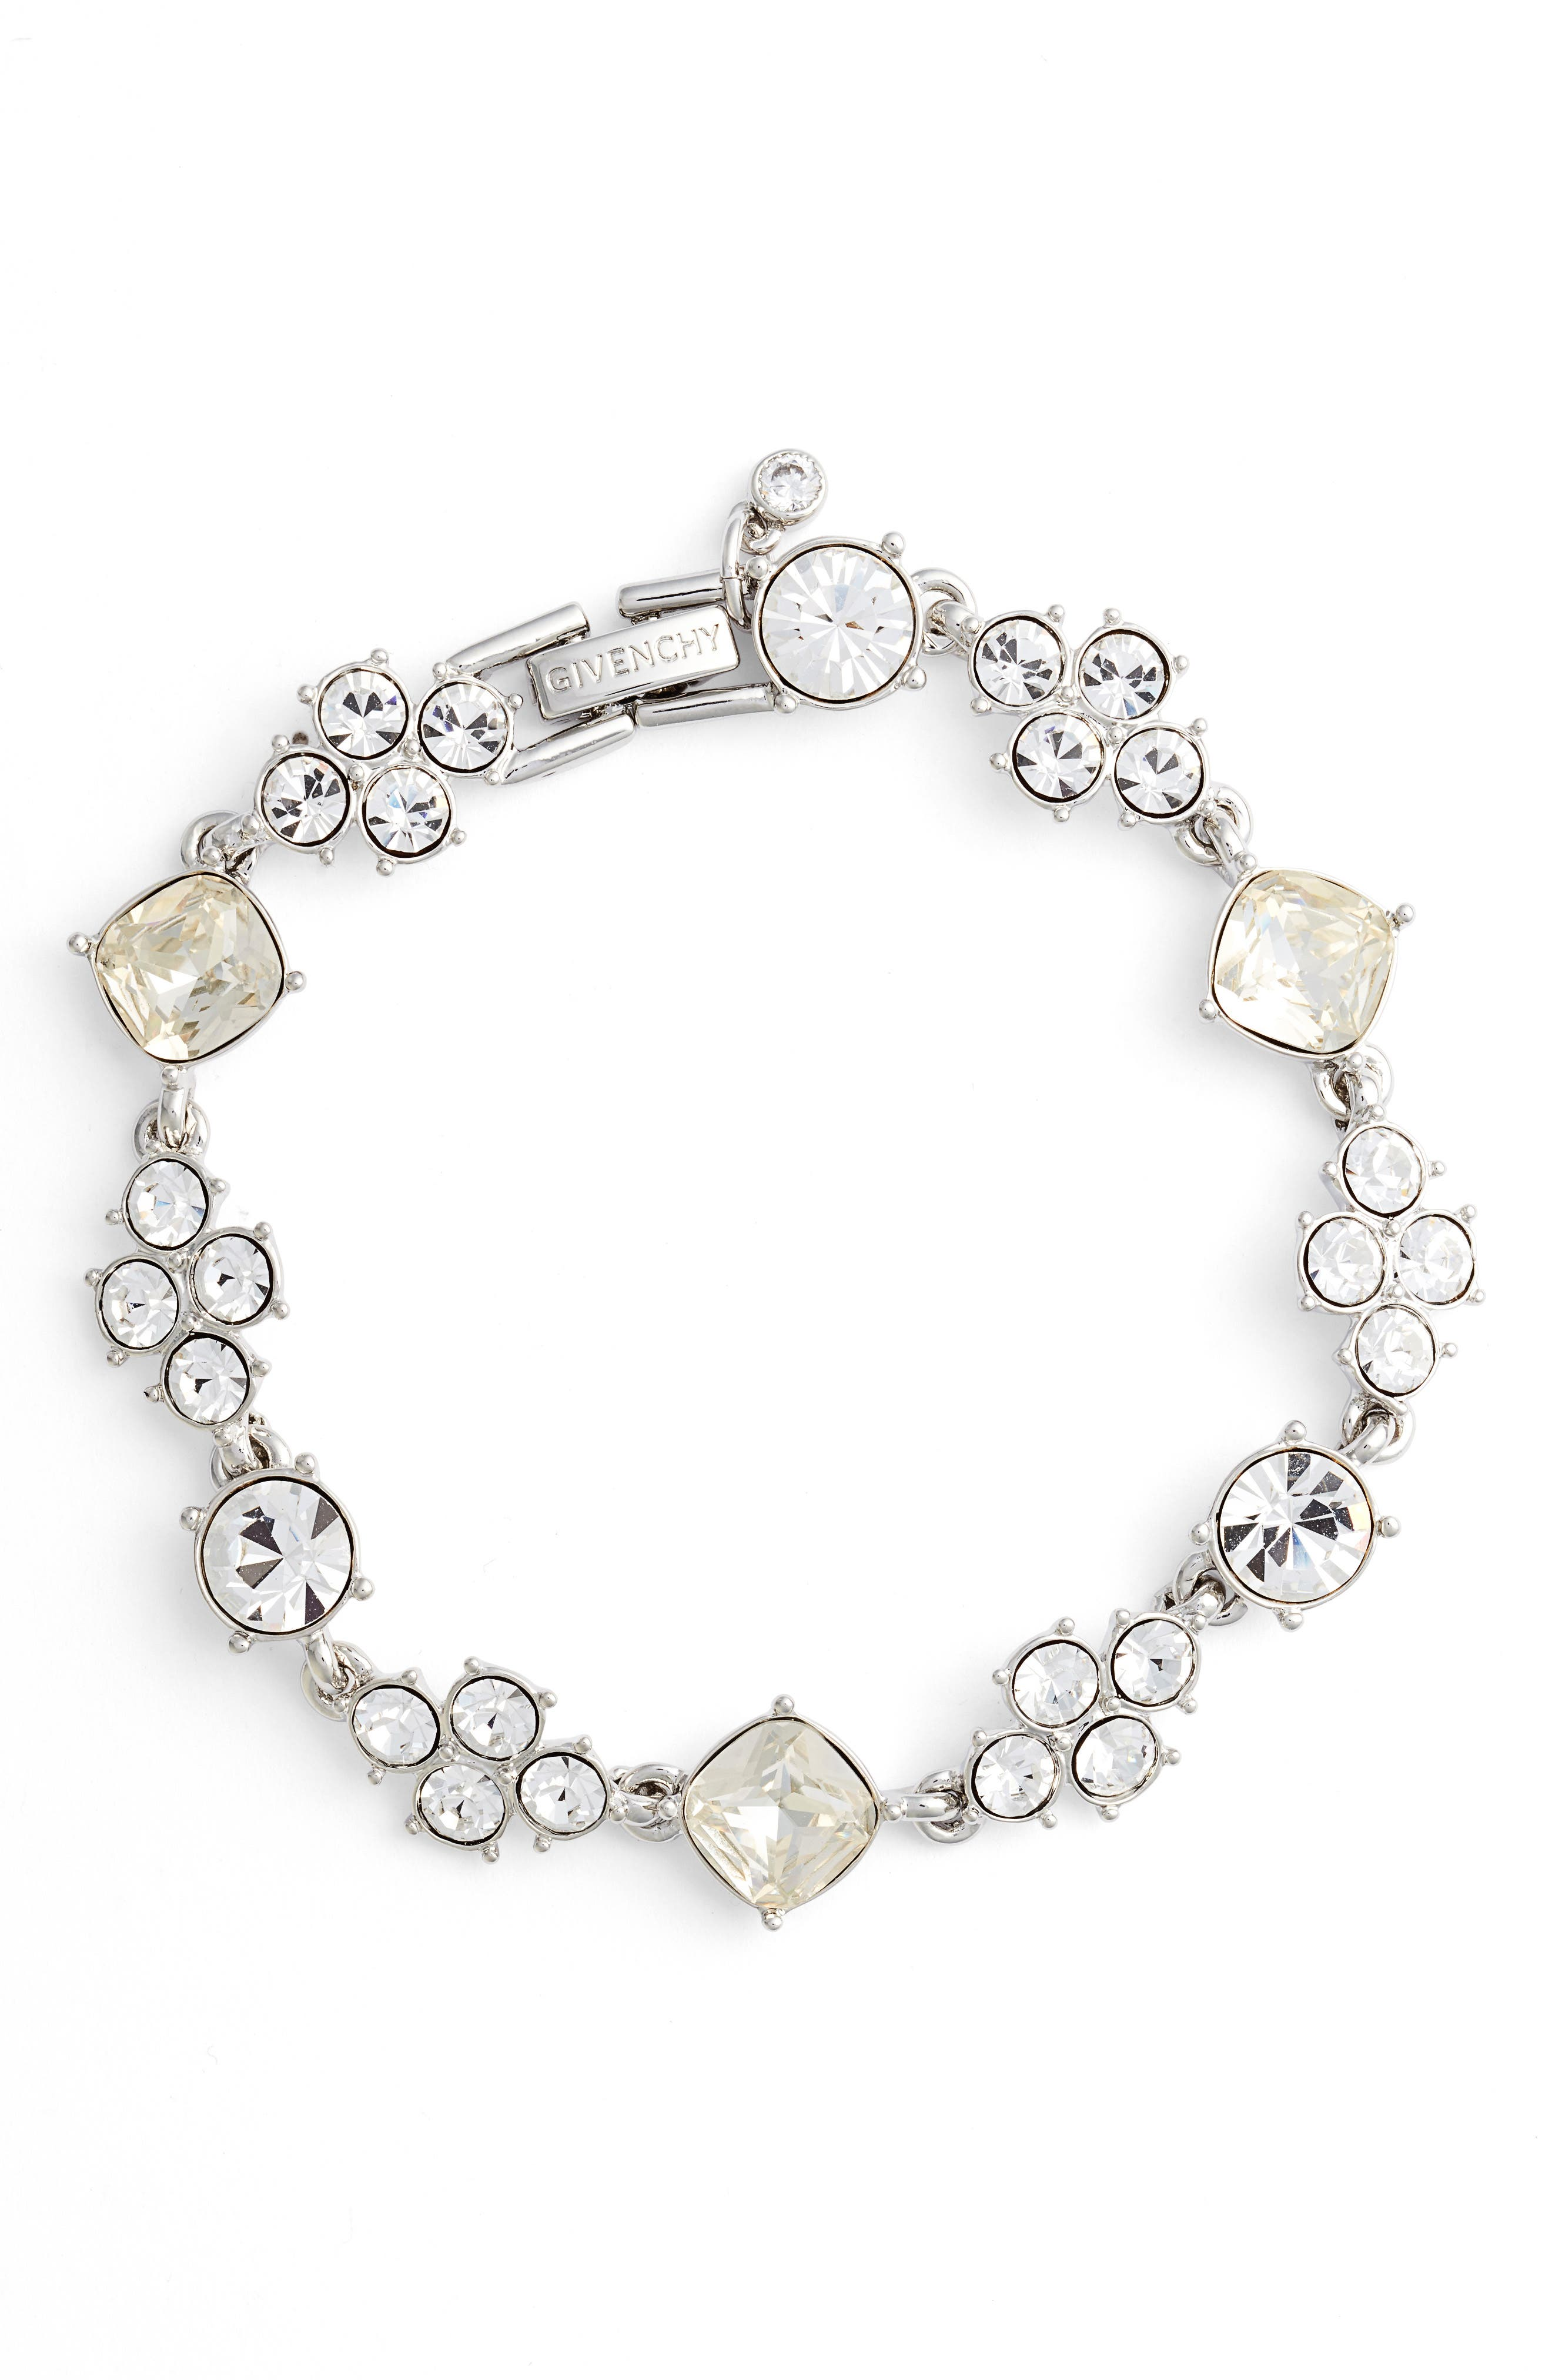 Devon Line Bracelet,                             Main thumbnail 1, color,                             040